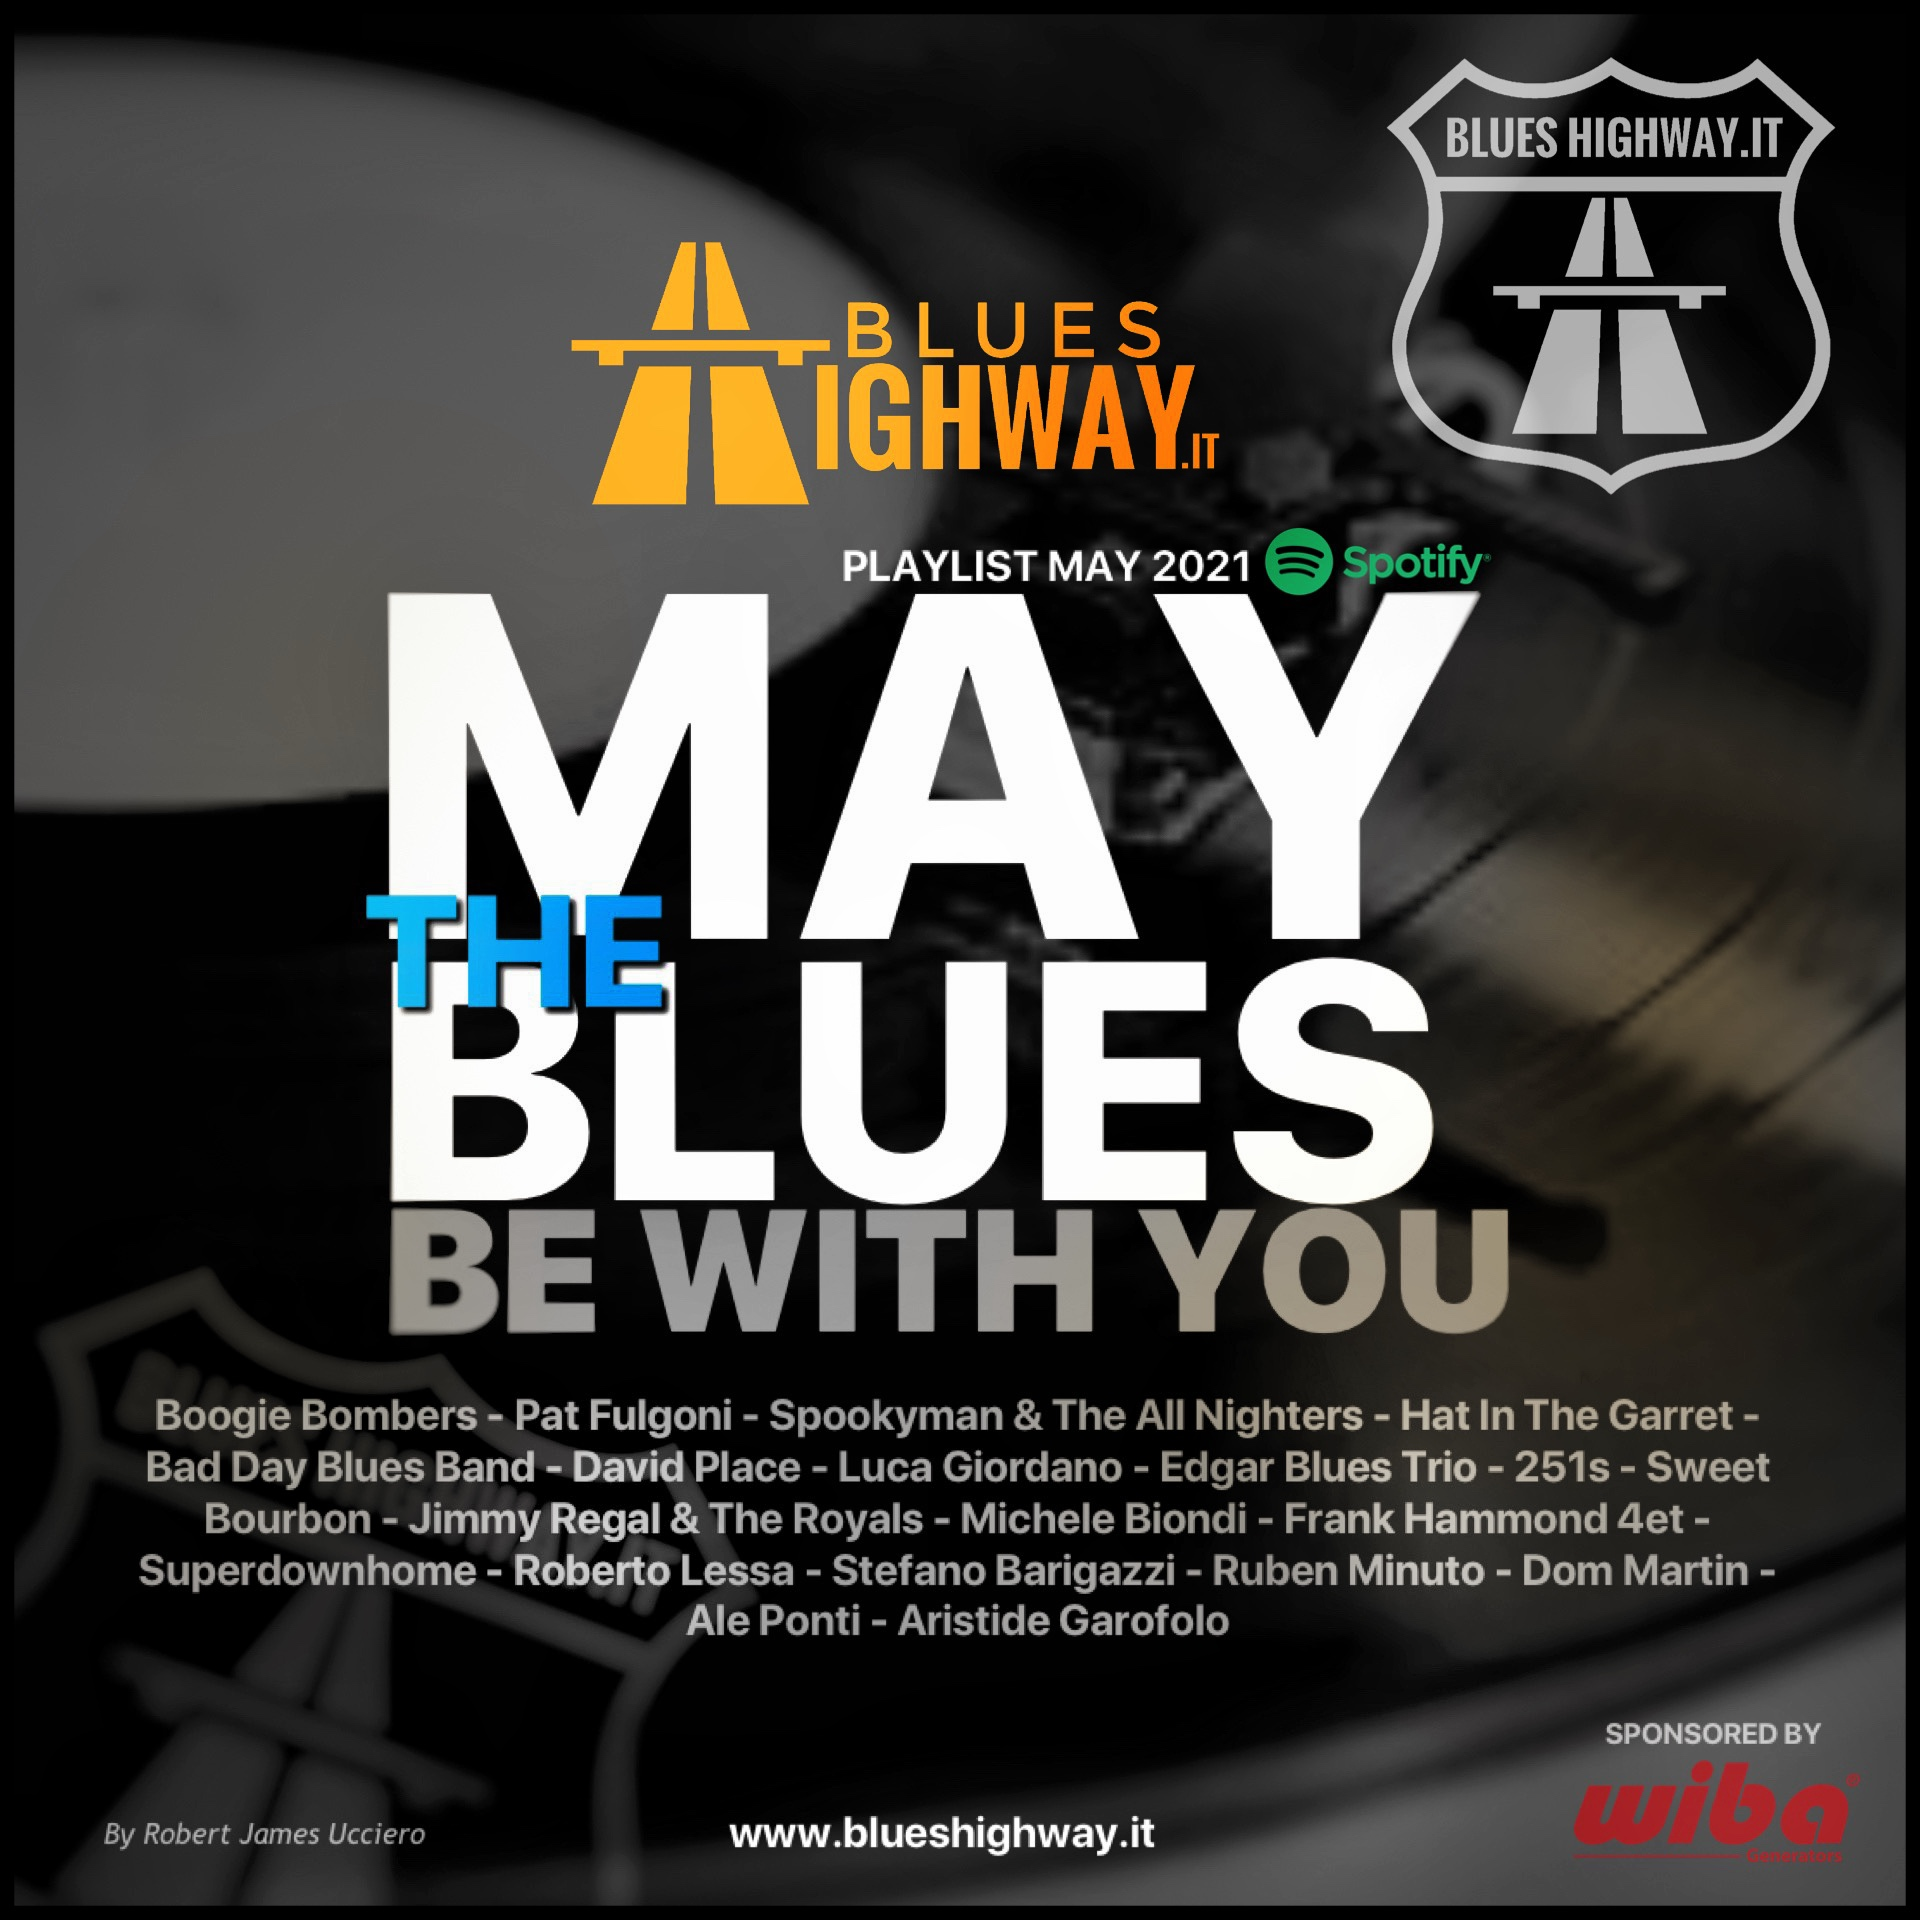 MAY THE BLUES BE WITH YOU - NEW PLAYLIST